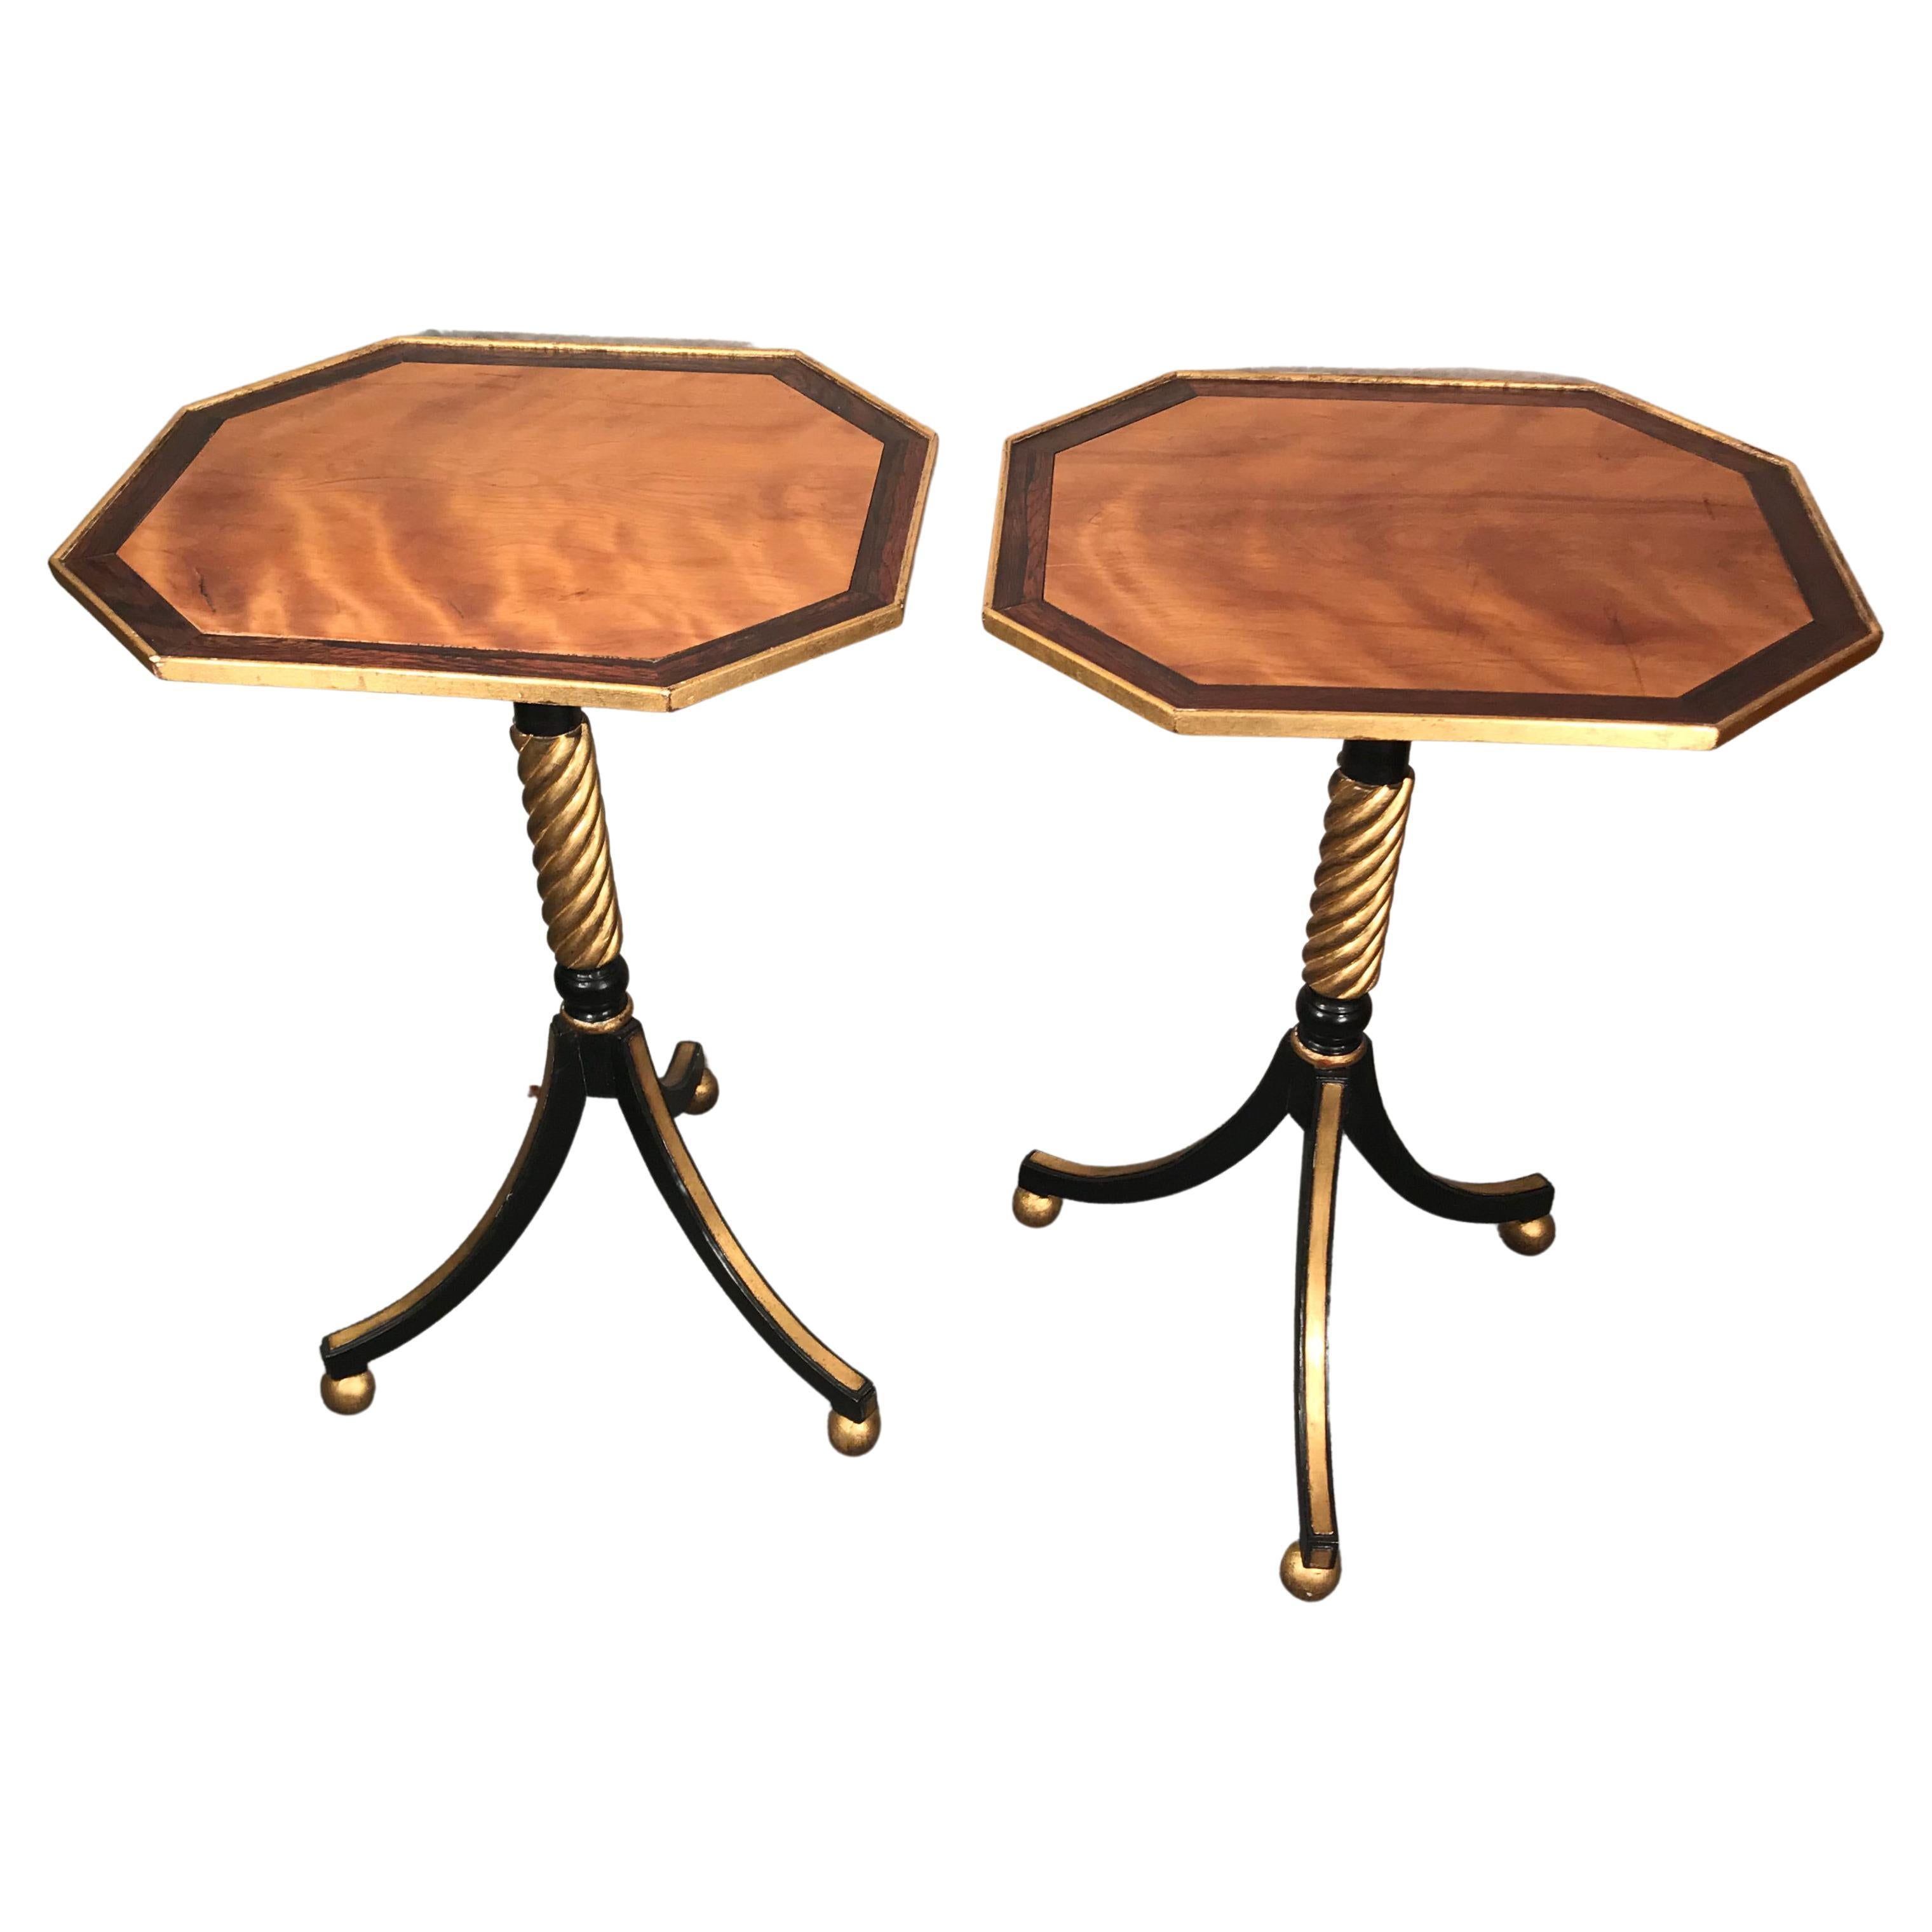 Pair of 19th century Side Tables, France